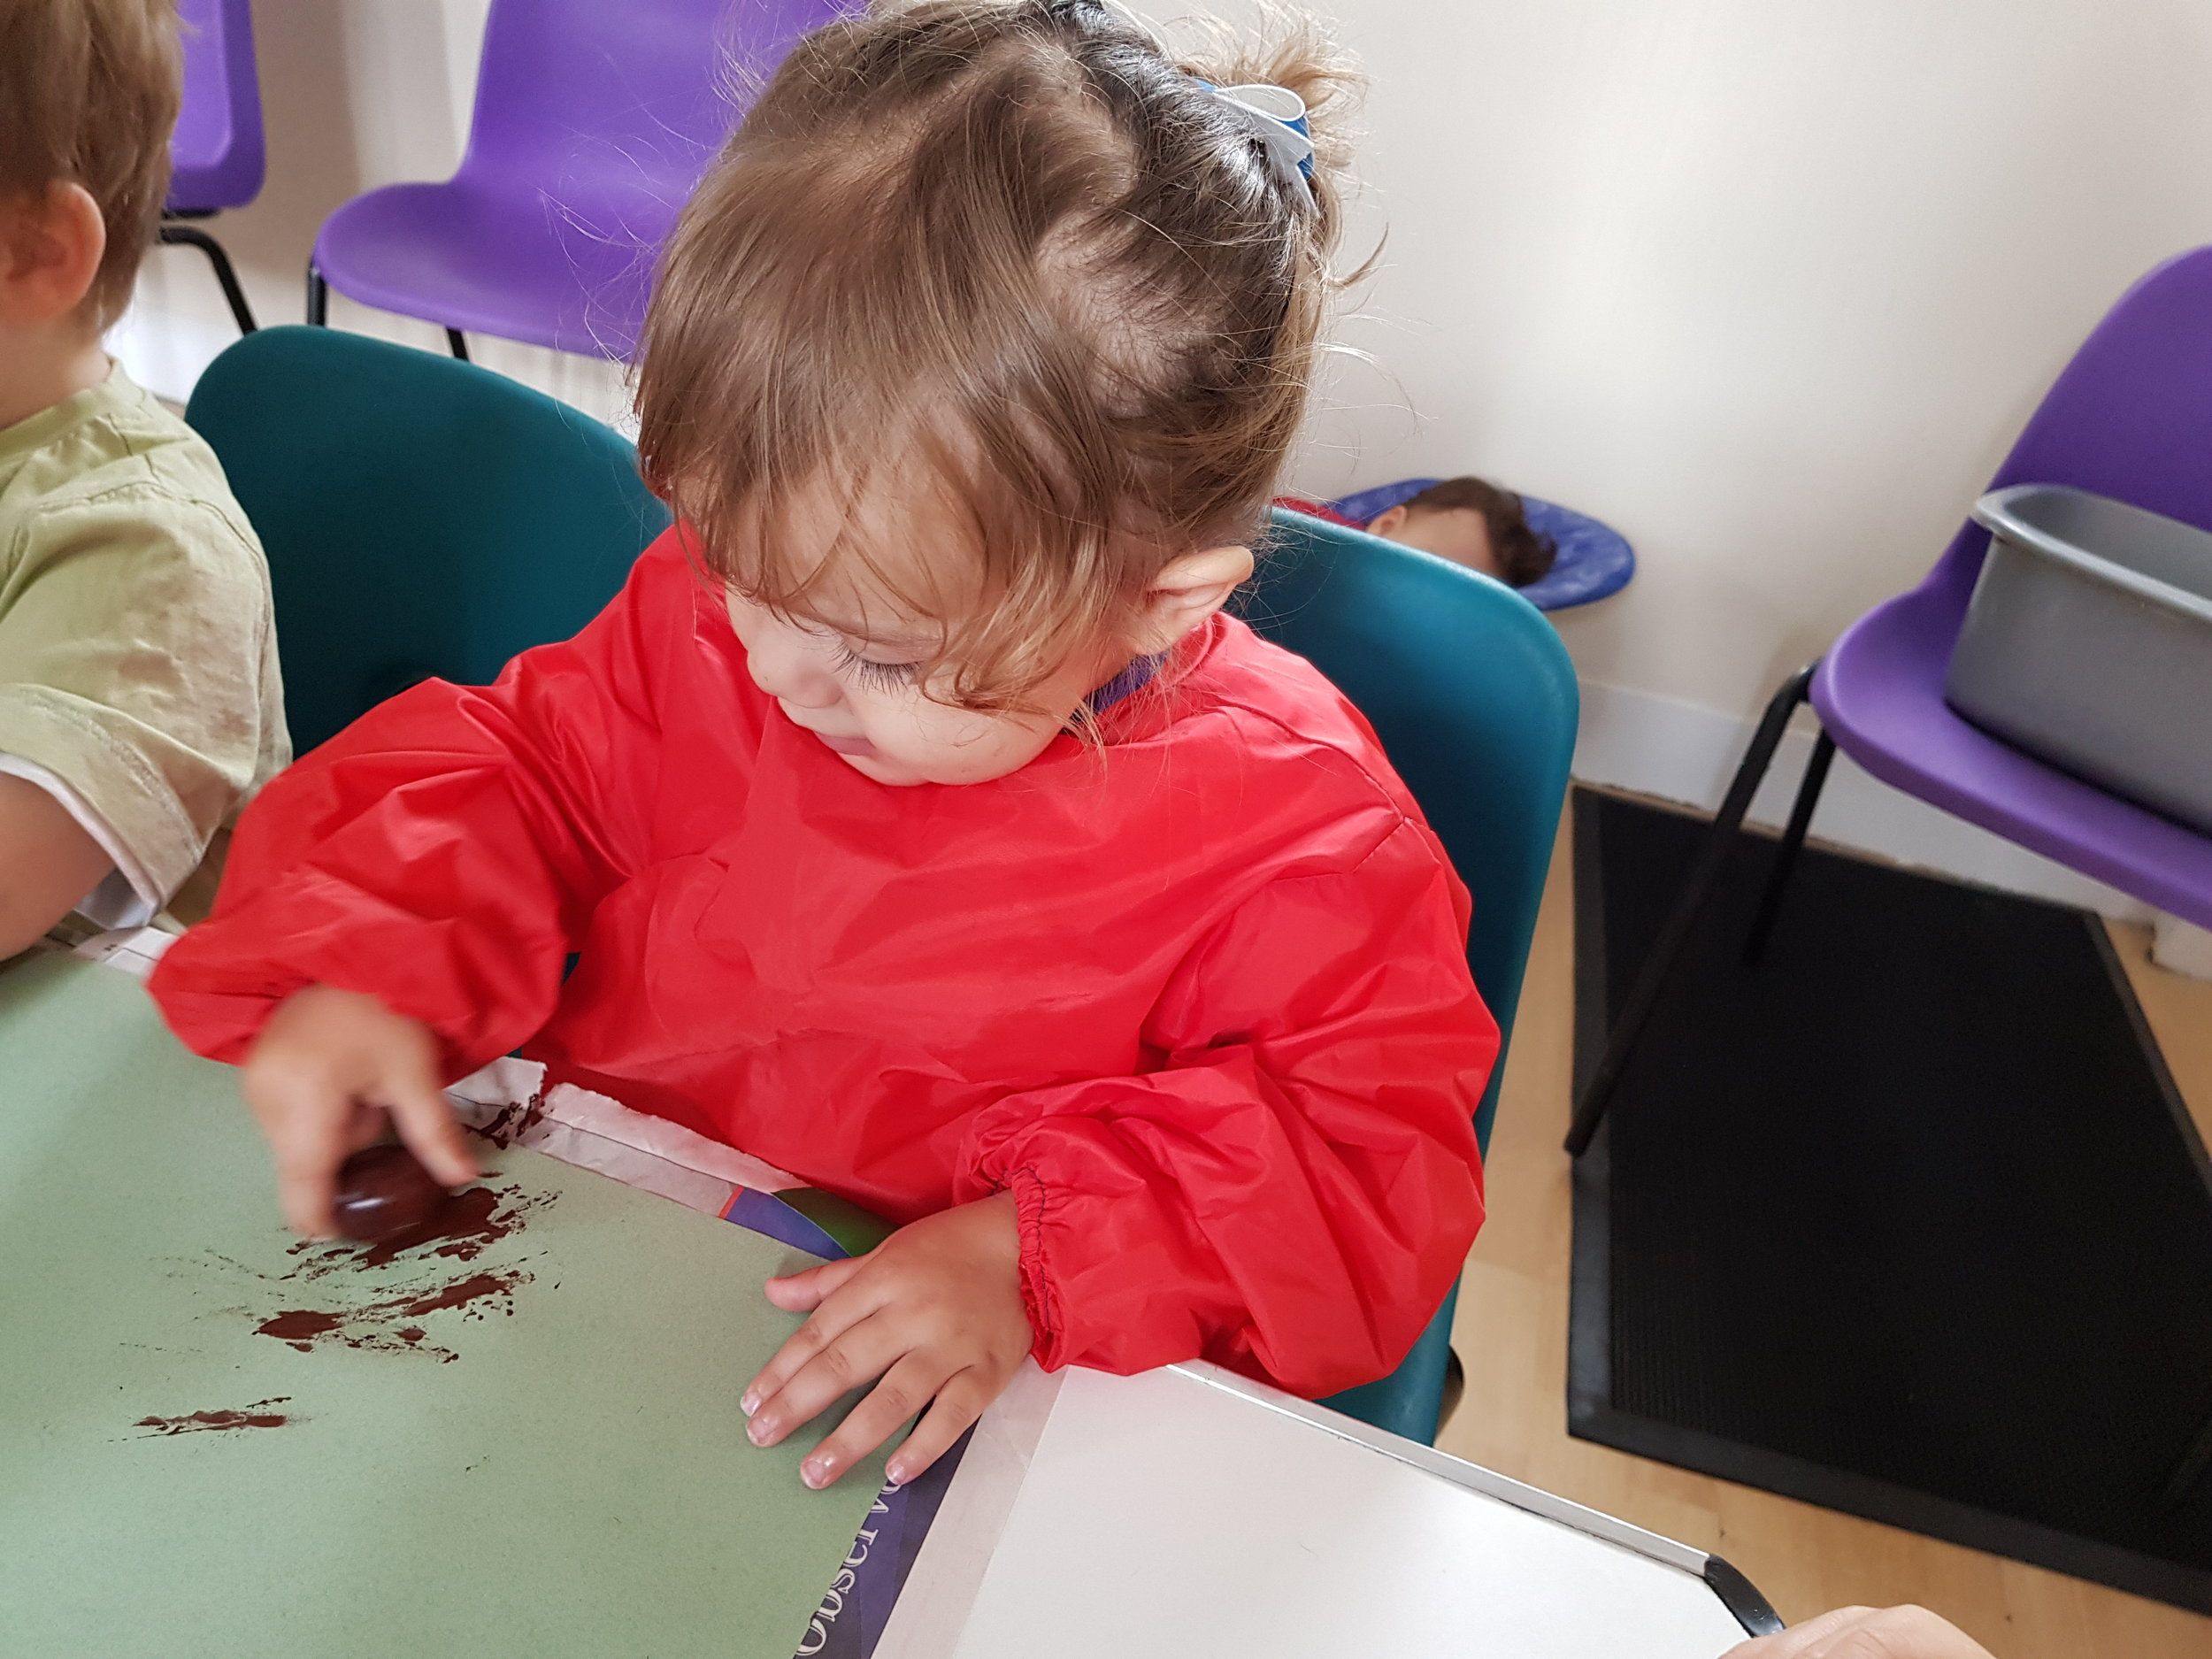 painting with conkers